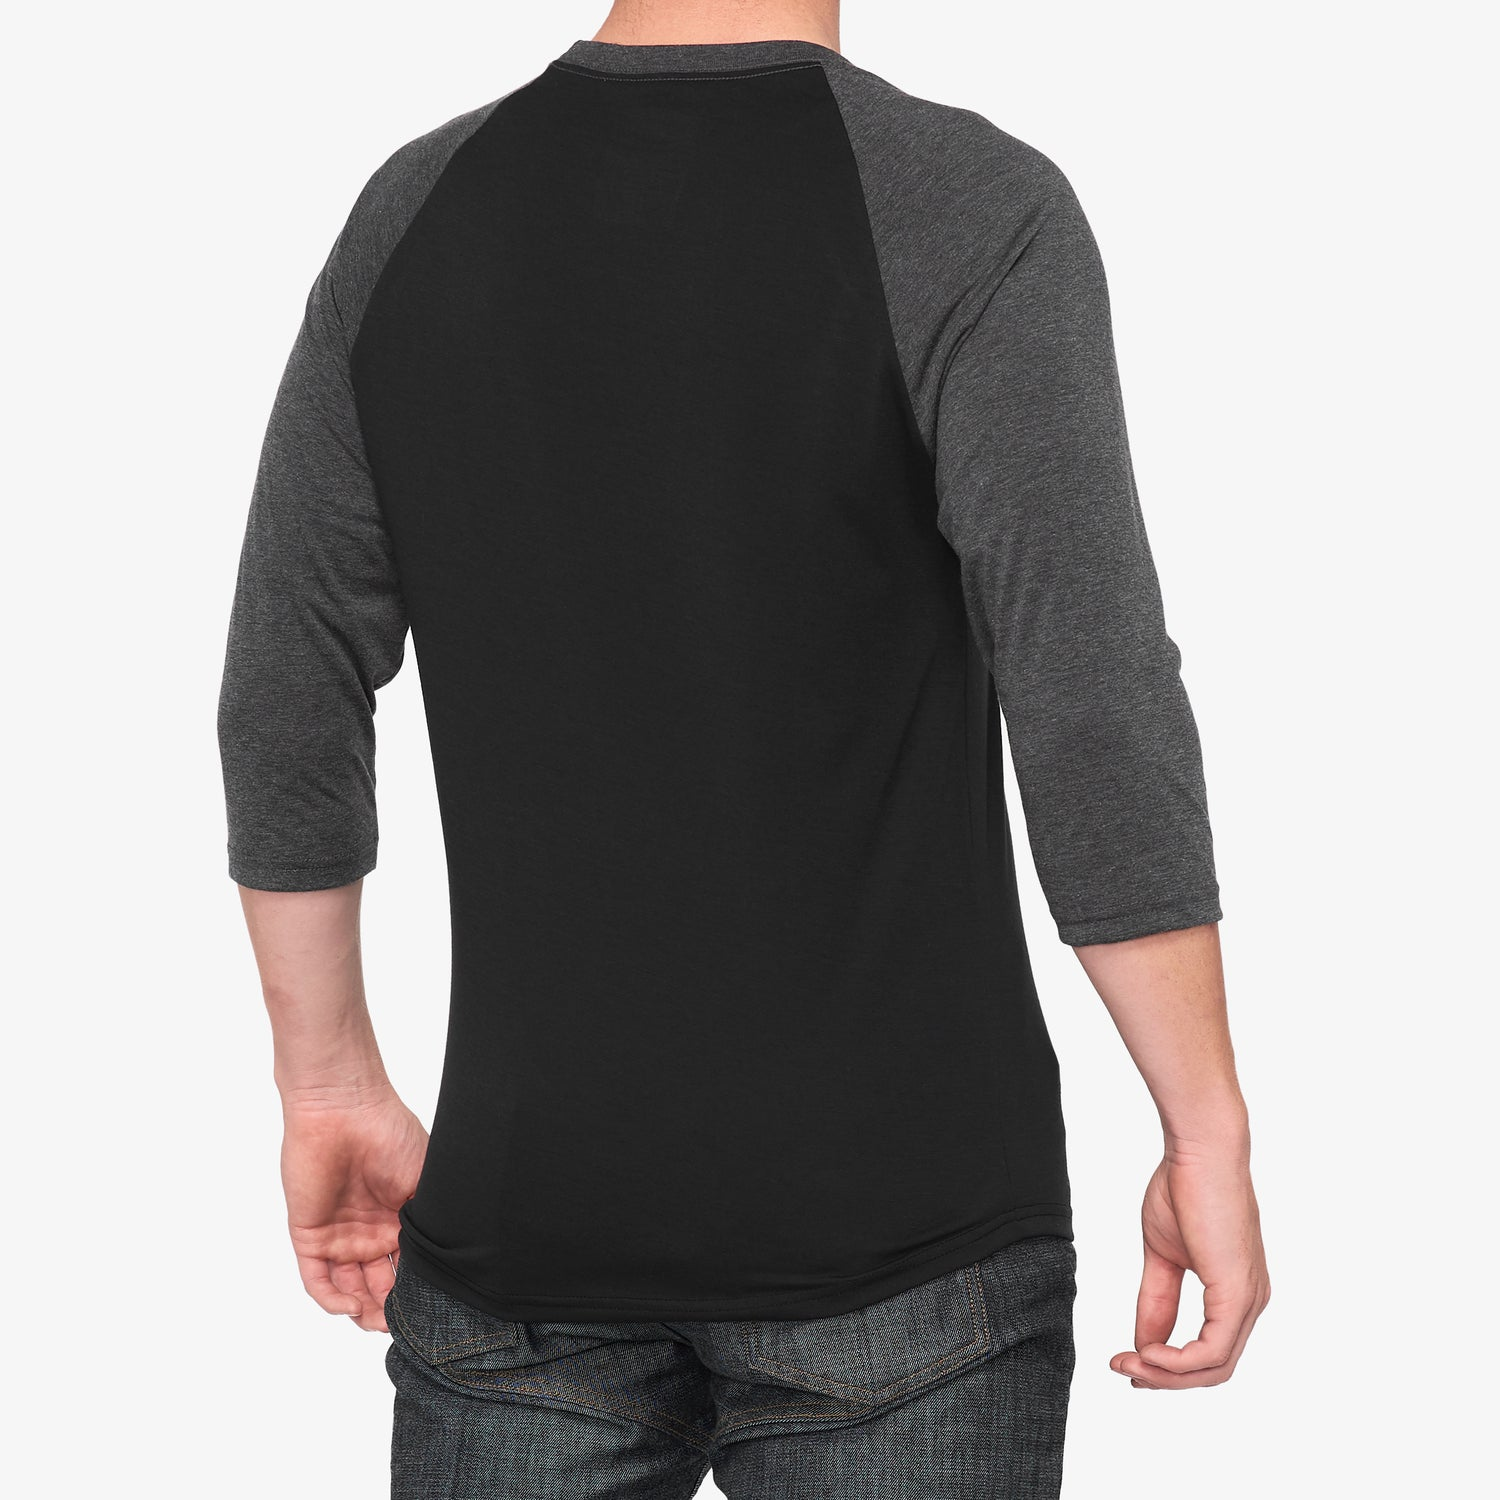 STRIPES 3/4 Sleeve Tech T-shirt Black